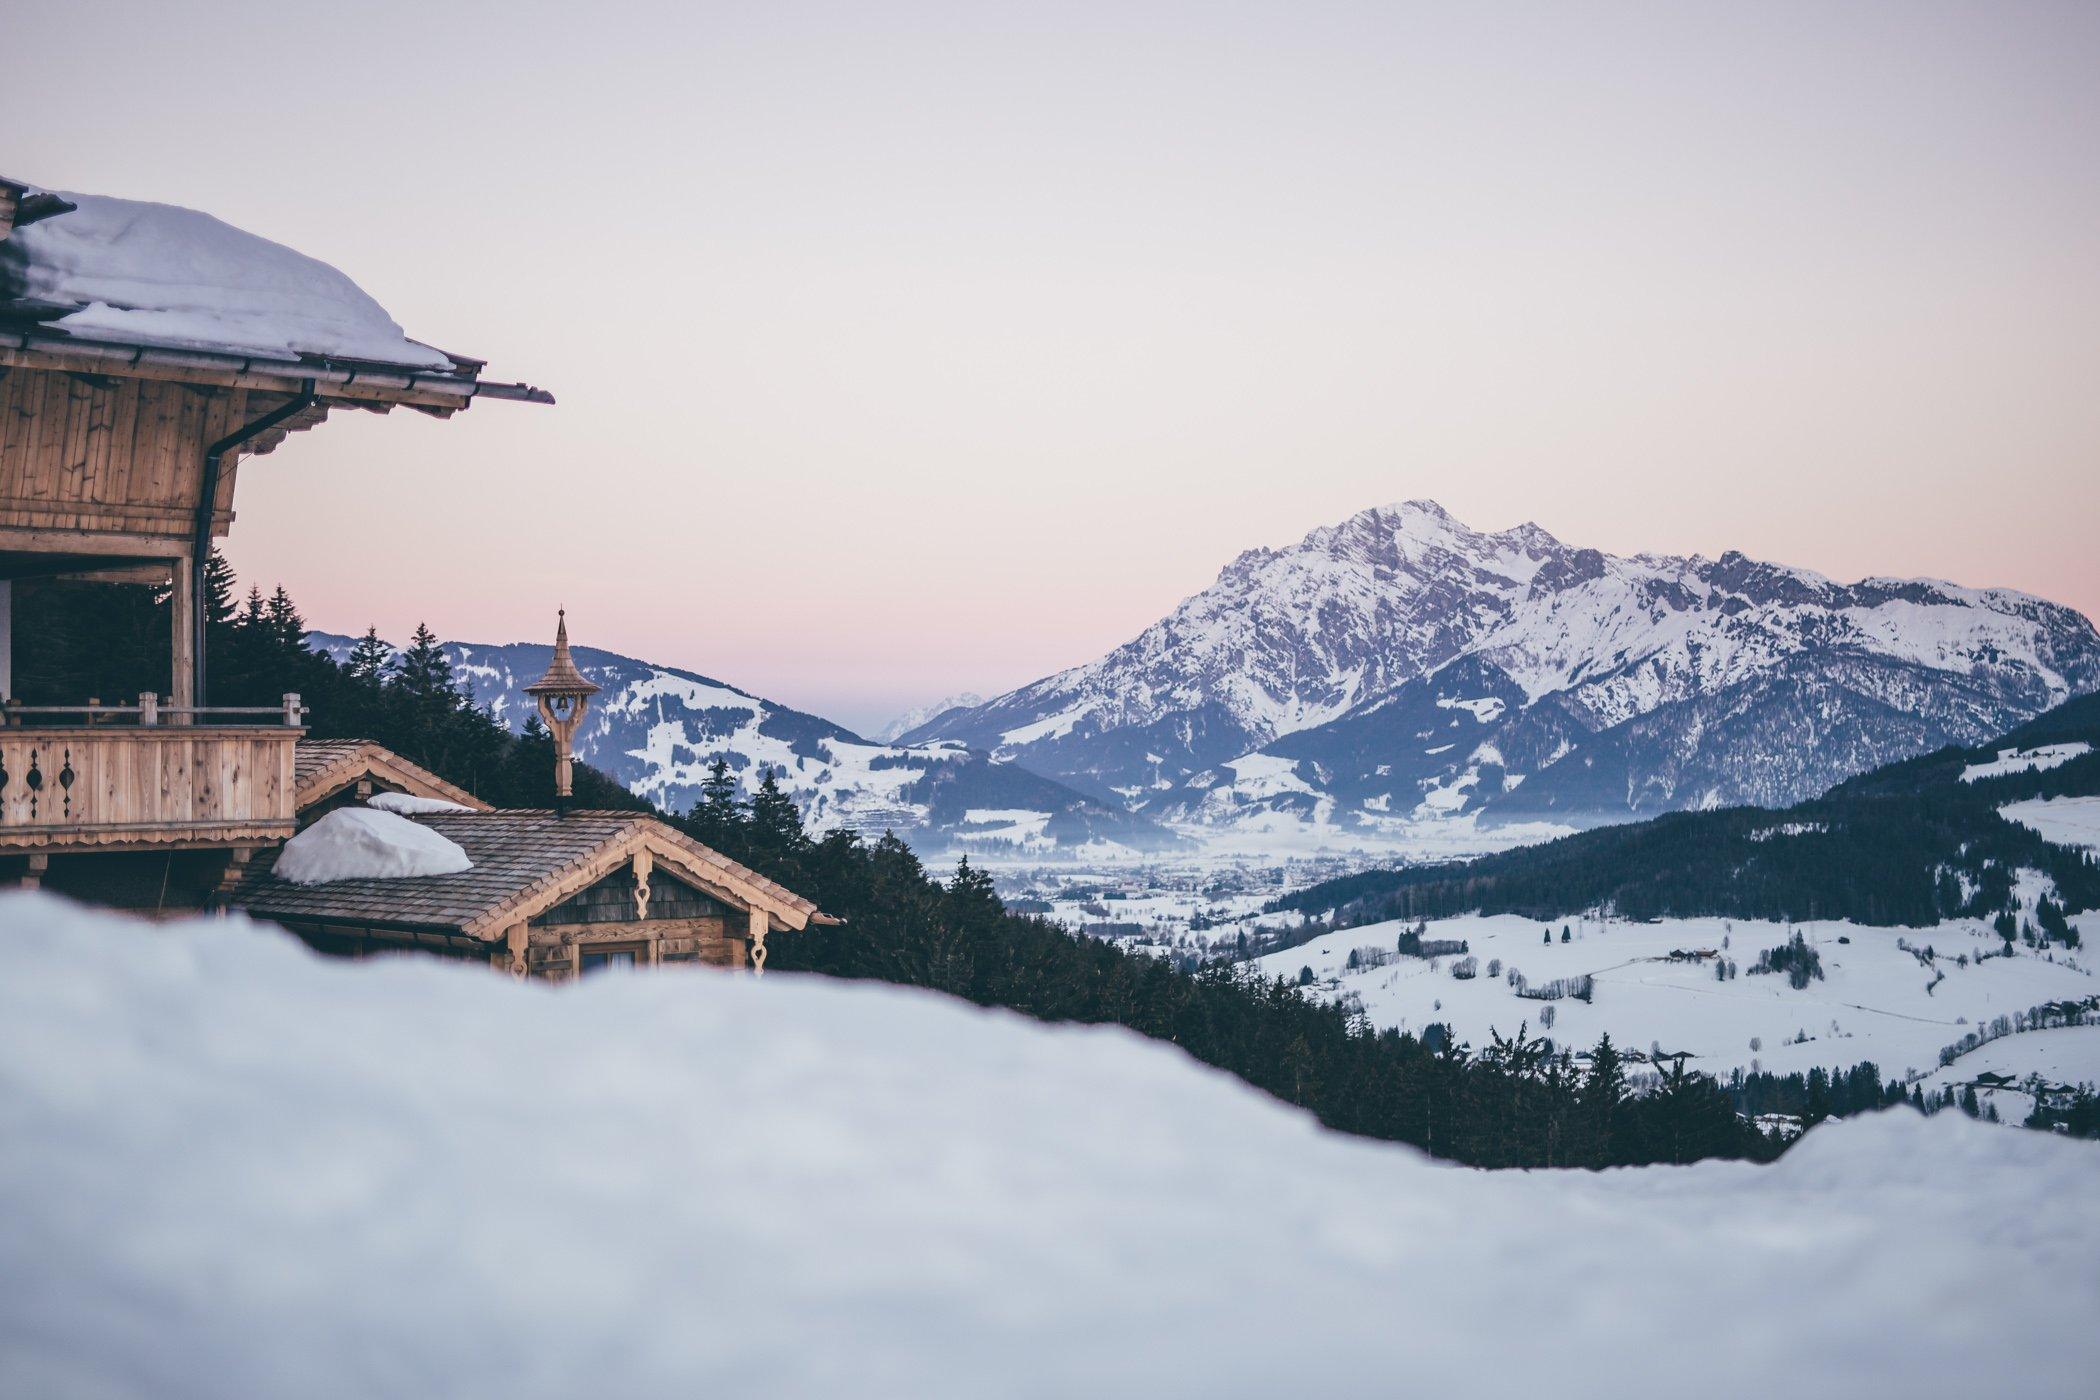 Winter holidays in Austria - the best chalets and mountain resorts